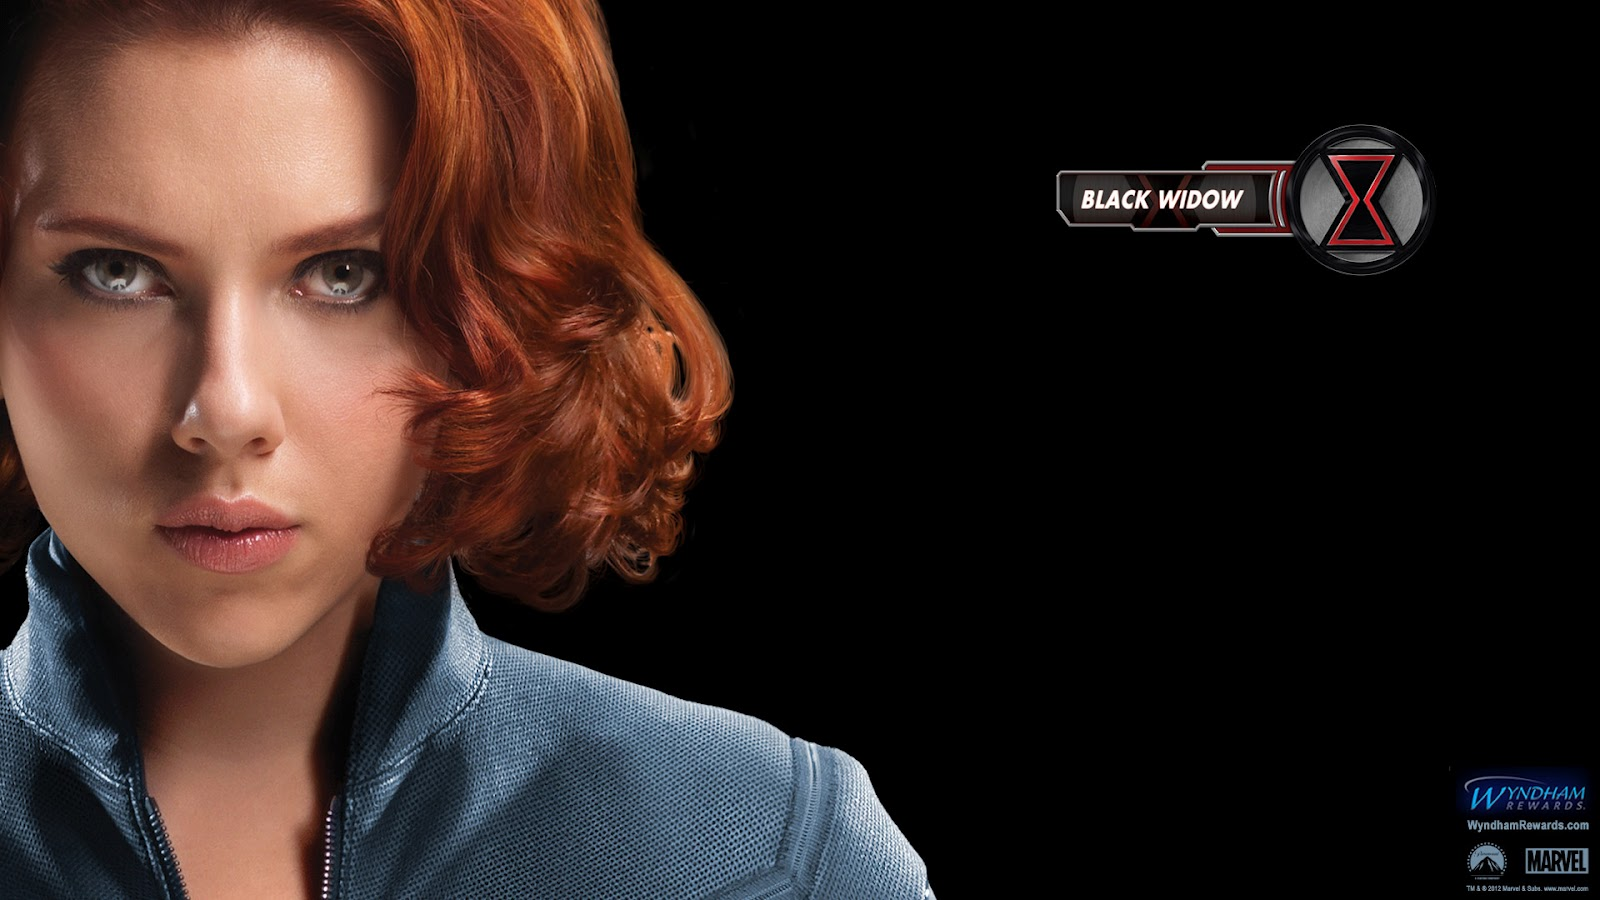 http://2.bp.blogspot.com/-Q2kNbfTRNfs/T4XyXdir9GI/AAAAAAAAEyU/71kDJpCgyoY/s1600/the-avengers-wallpaper-black-widow.jpg